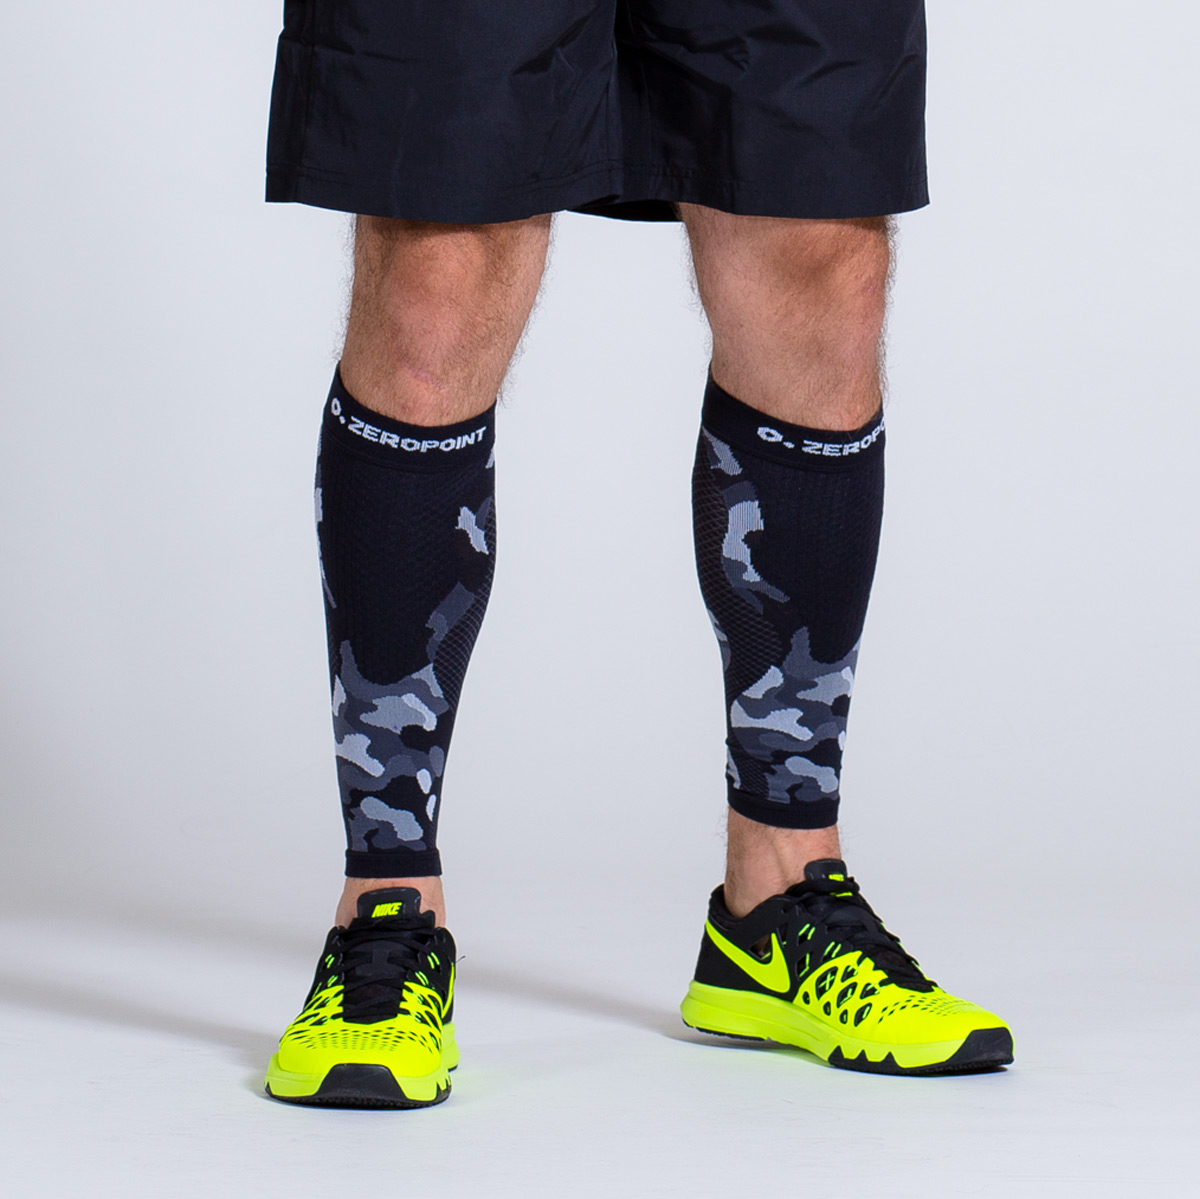 Compression Calf Sleeves Zeropoint